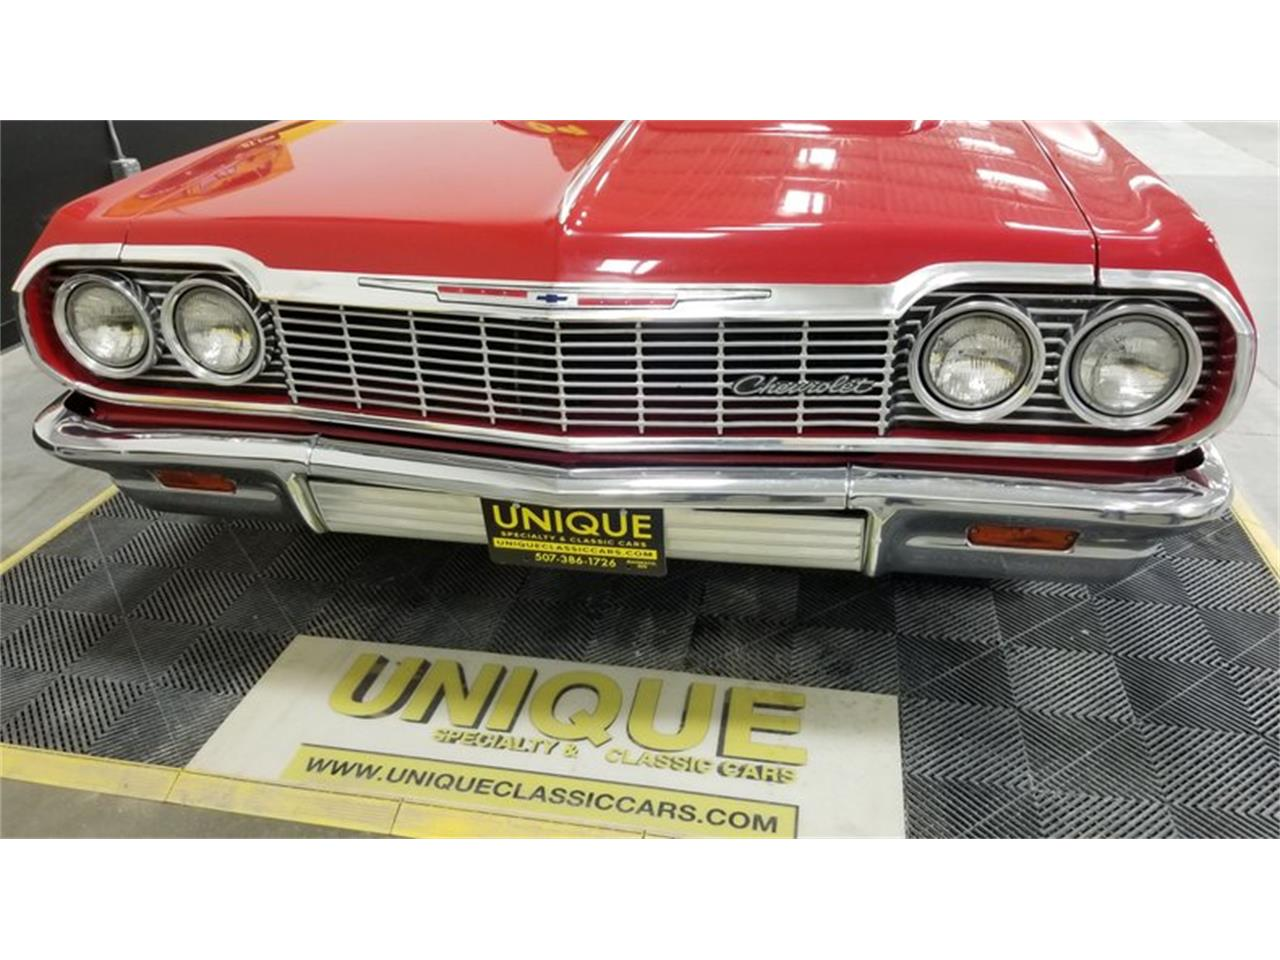 1964 Chevrolet Impala (CC-1336009) for sale in Mankato, Minnesota